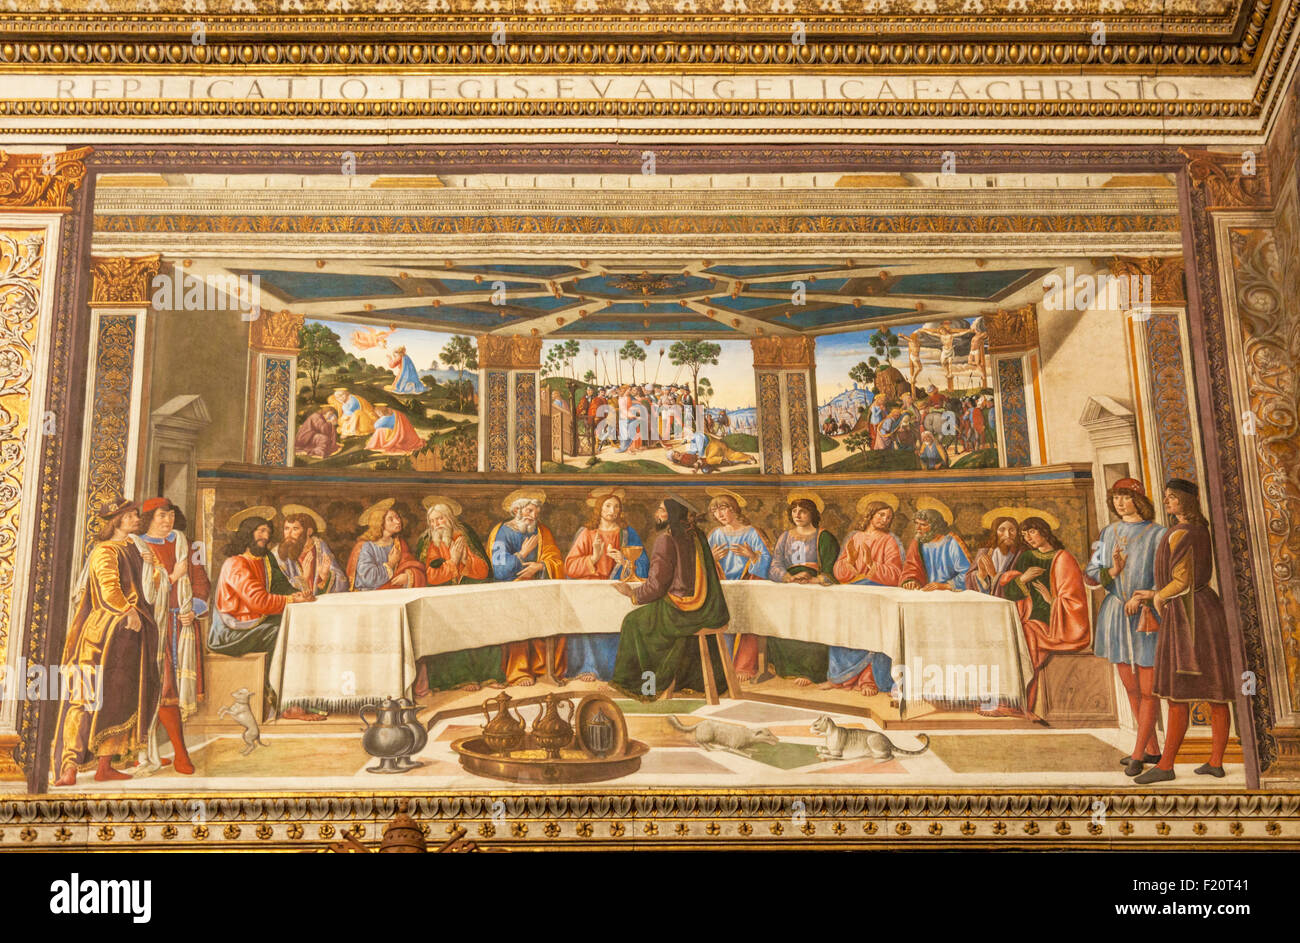 The Last Supper a fresco by Cosimo Rosselli Sistine Chapel Apostolic Palace Vatican Museum Vatican City Rome Italy - Stock Image